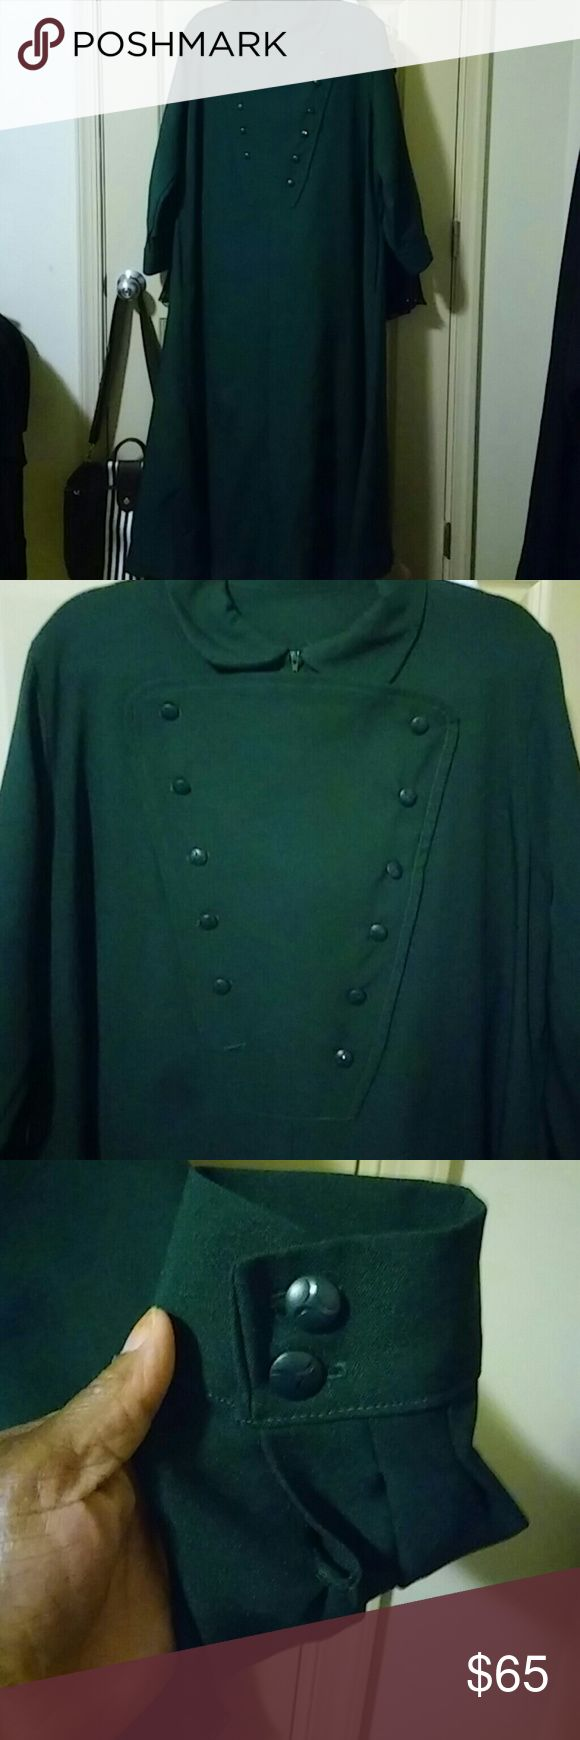 Tailor made jibab Overgarment, worn to be modest. Islamic clothing Habibah Other